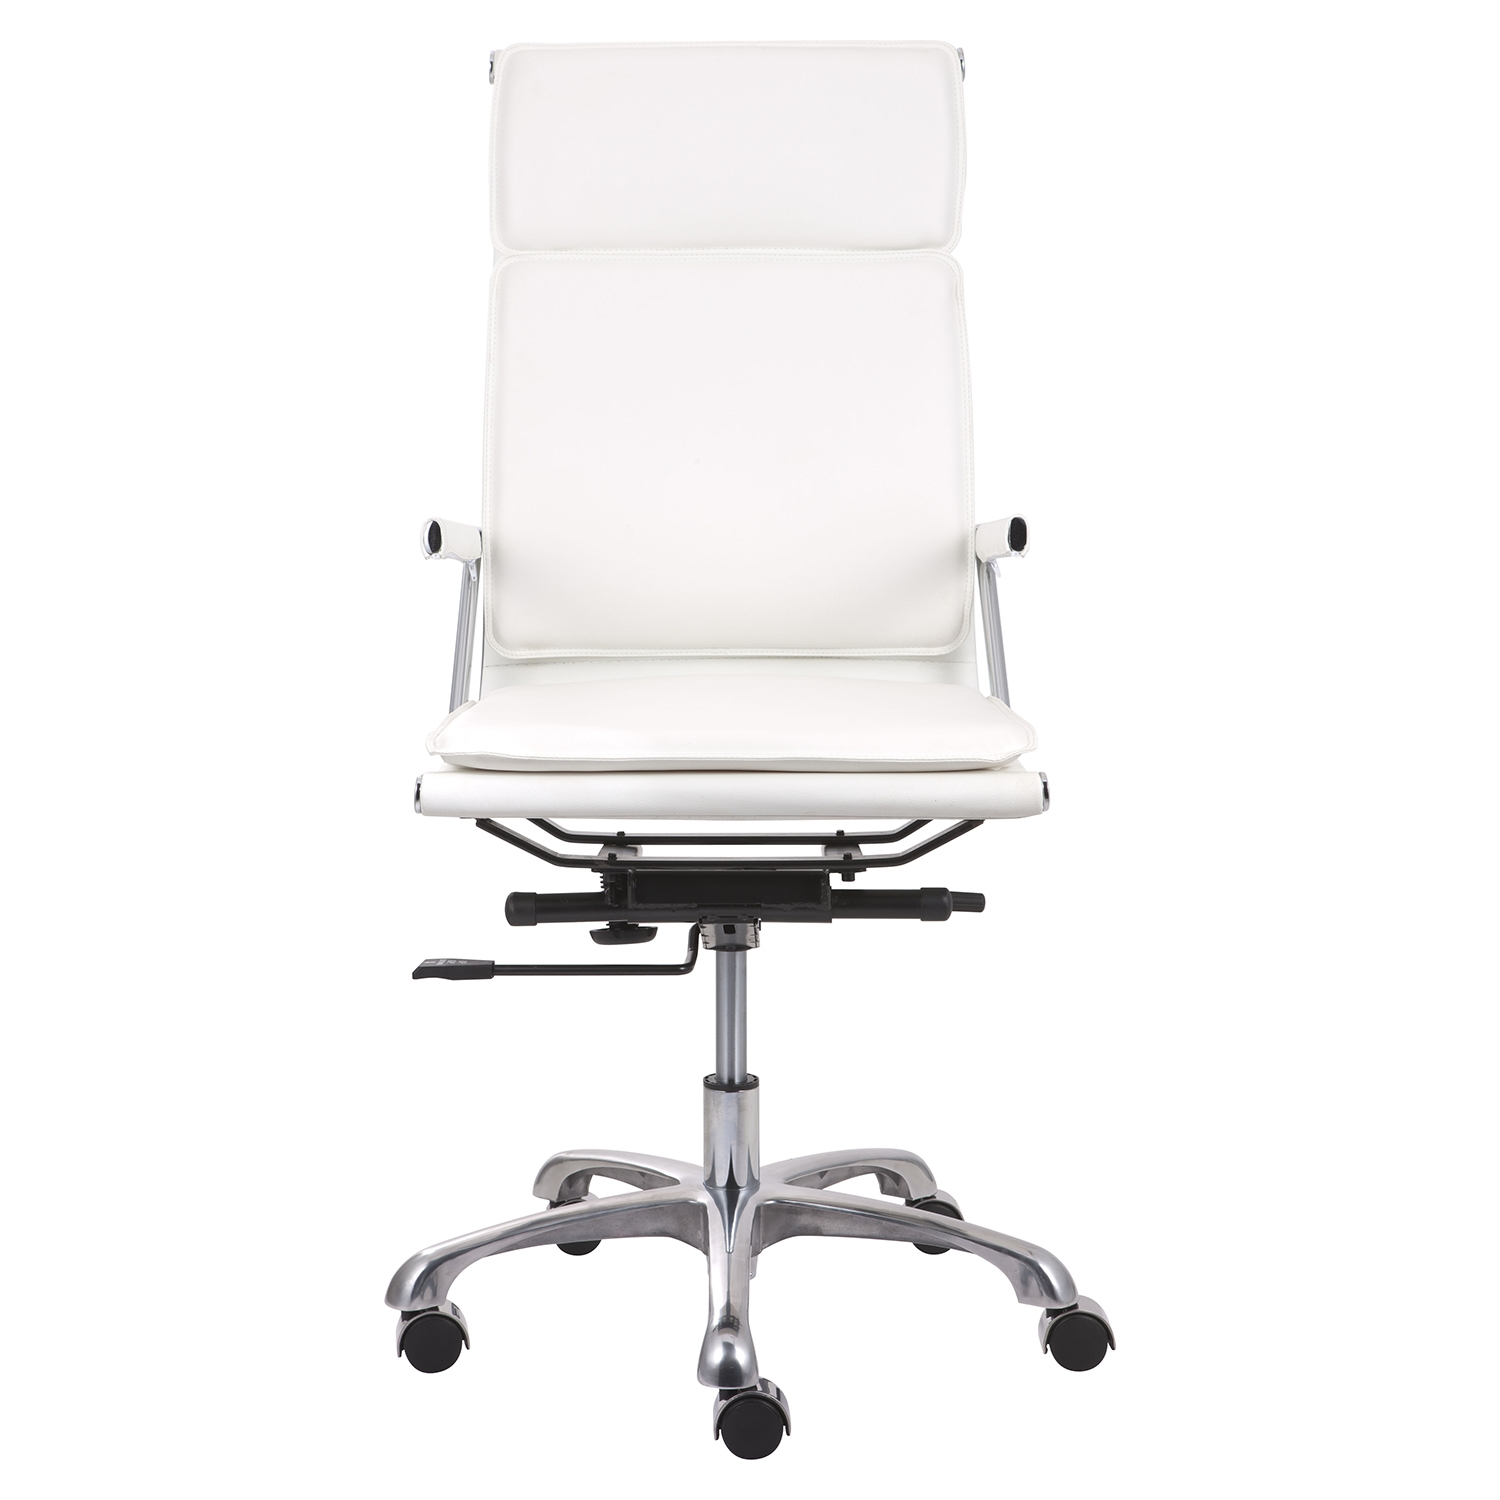 Lider Plus High Back Office Chair - White - ZM-215232